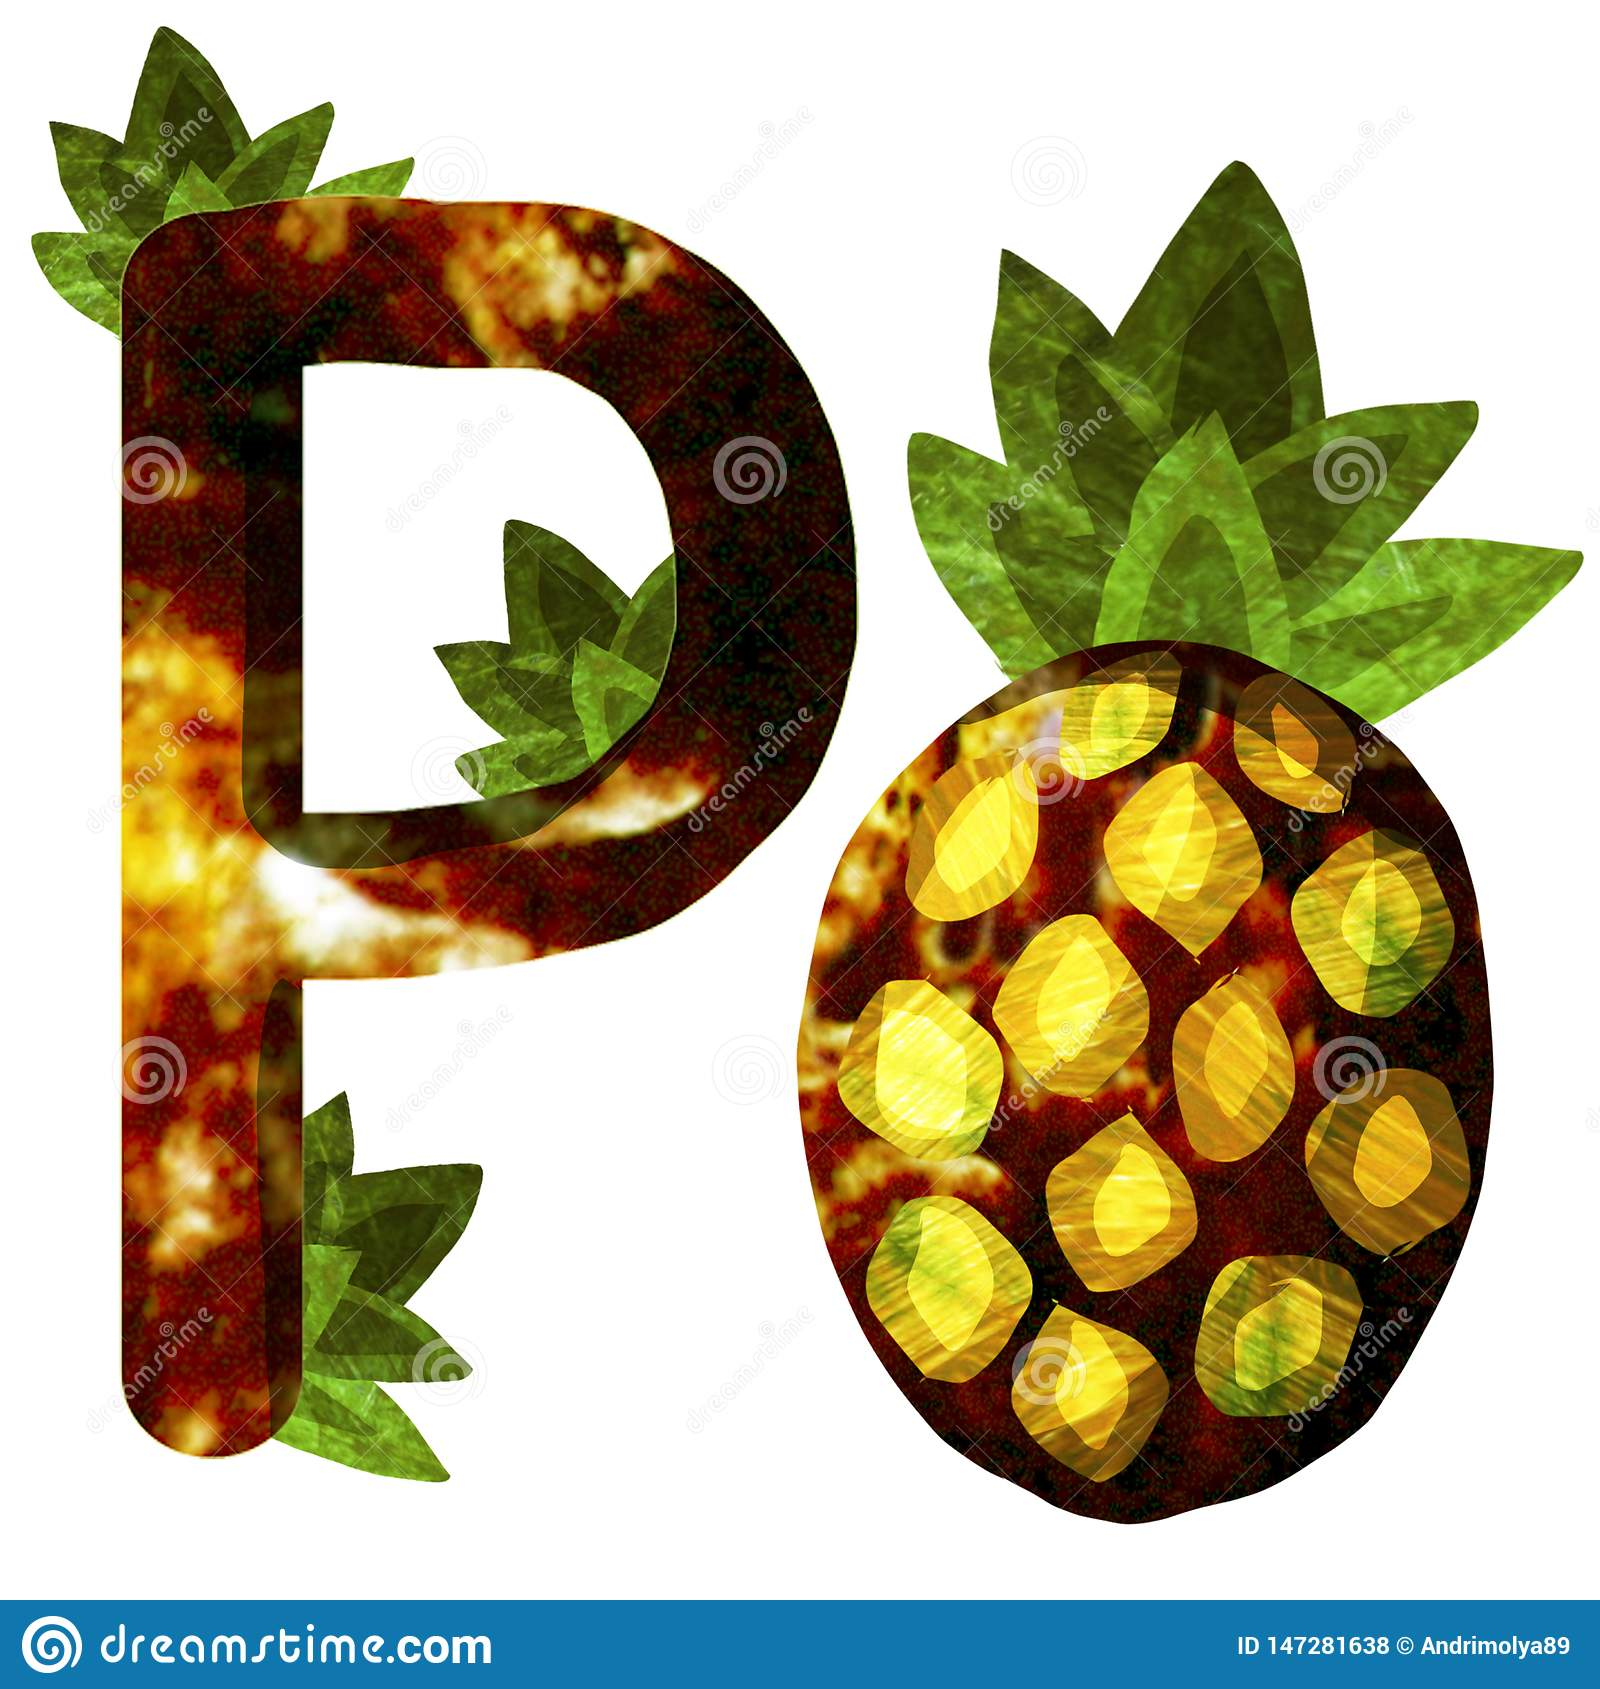 Illustration with pineapple